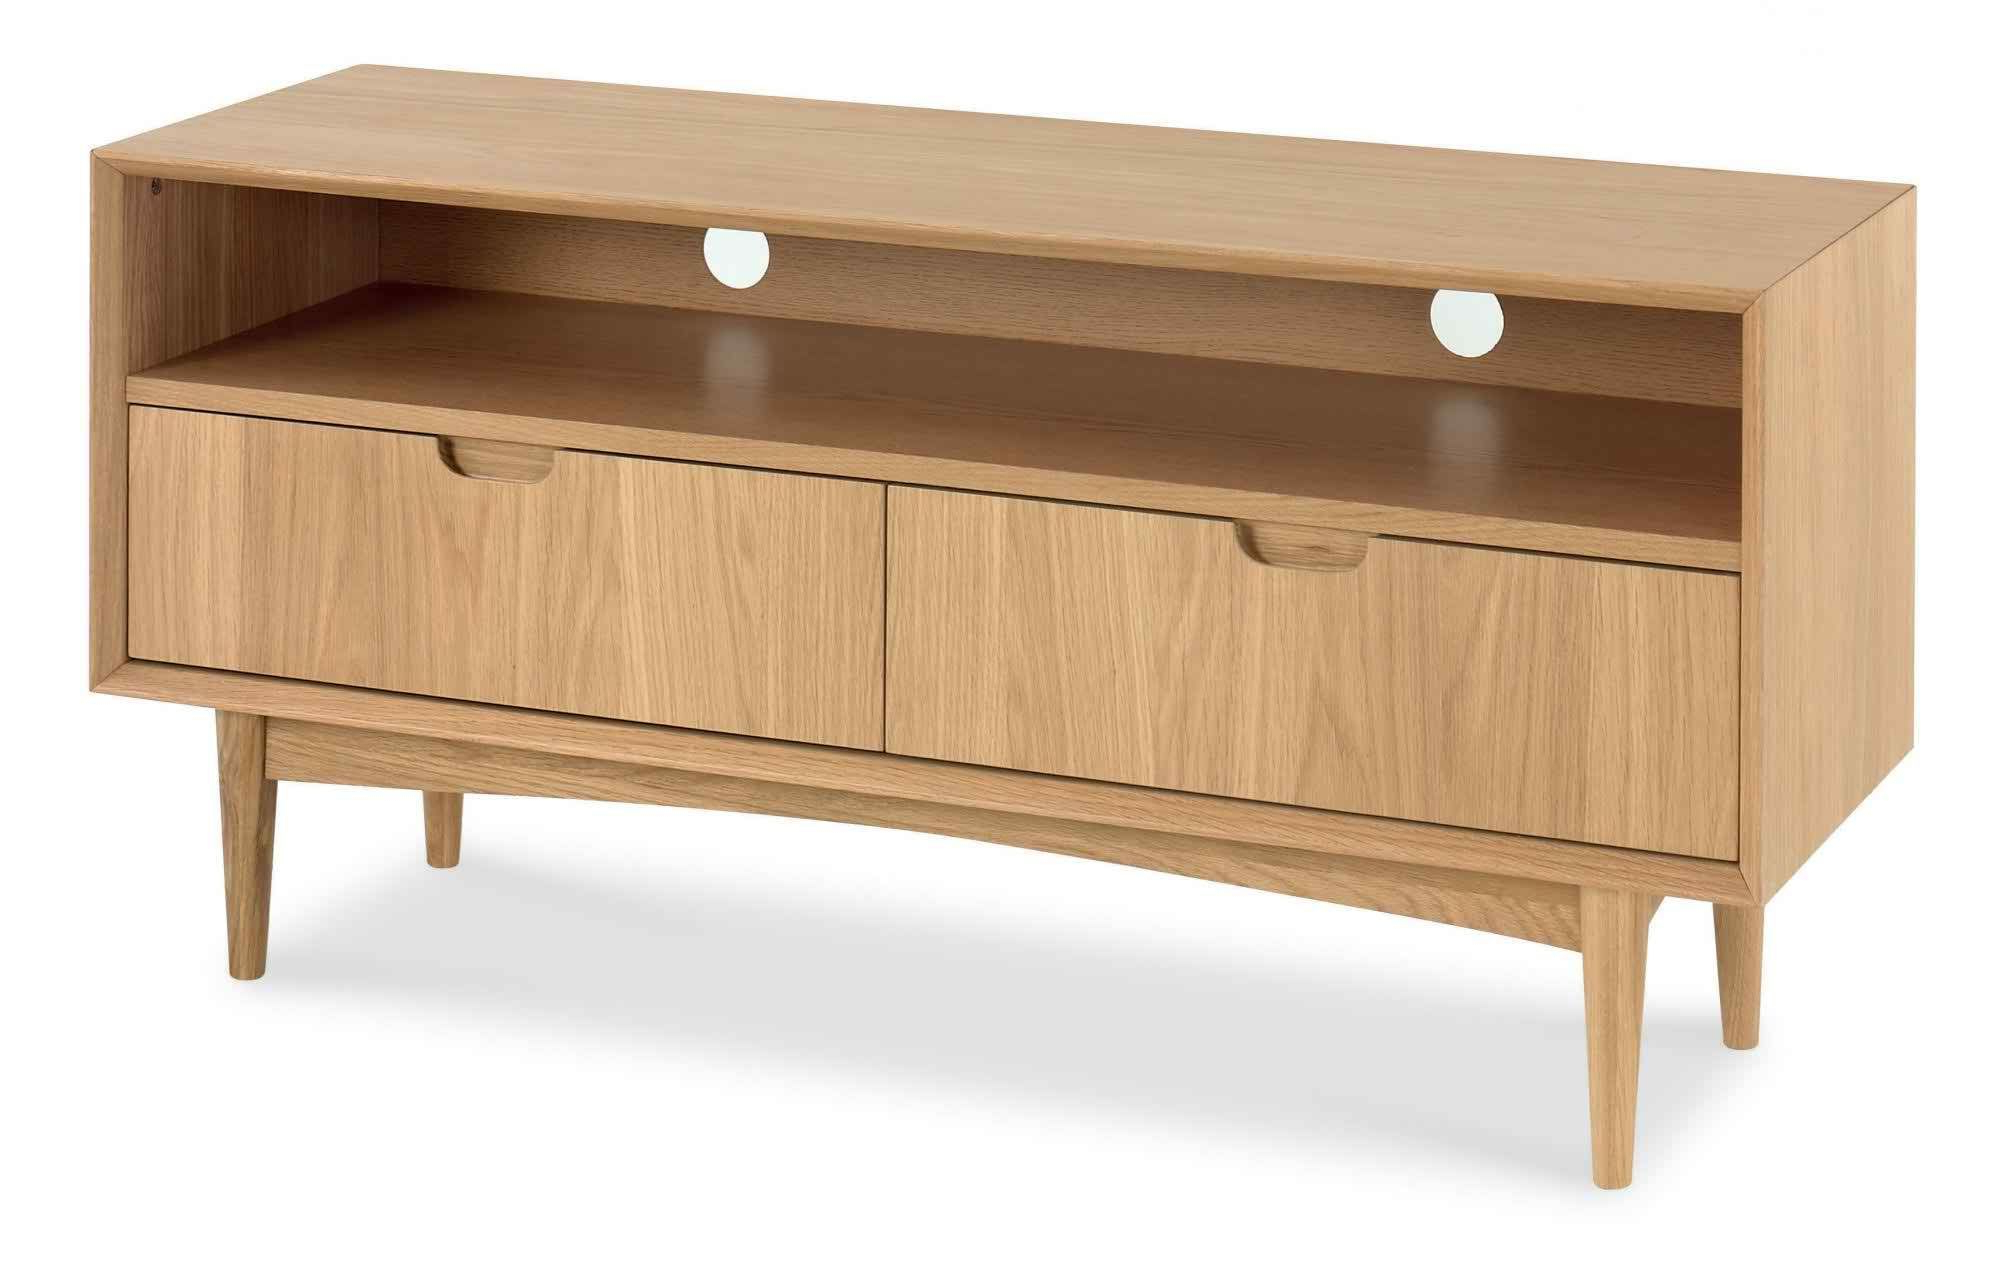 Bentley Designs Oslo Oak Entertainment Unit |first Intended For Bromley Extra Wide Oak Tv Stands (View 10 of 20)